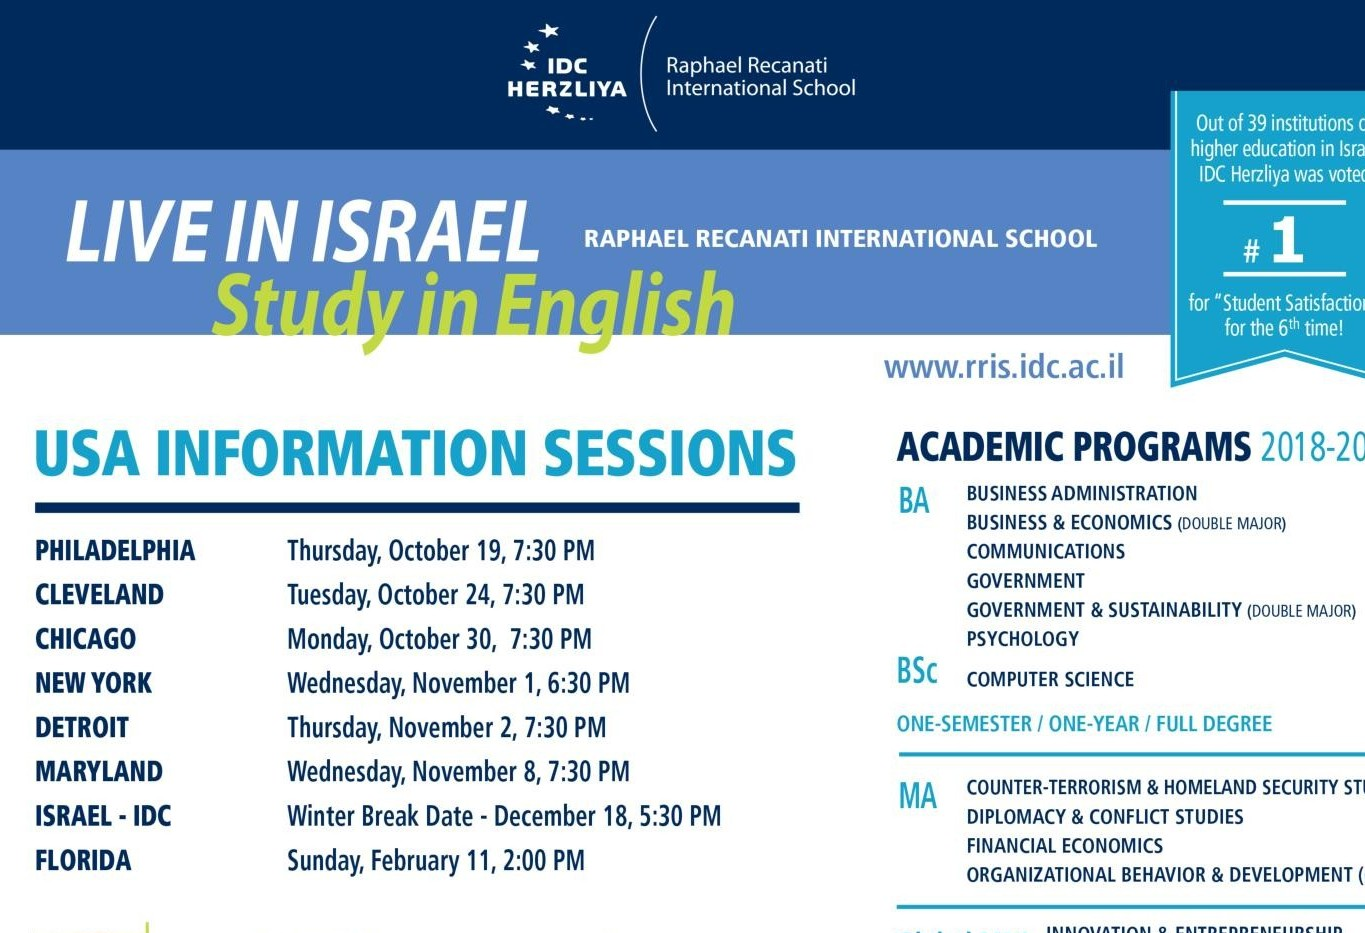 IDC Herzliya USA Information Sessions